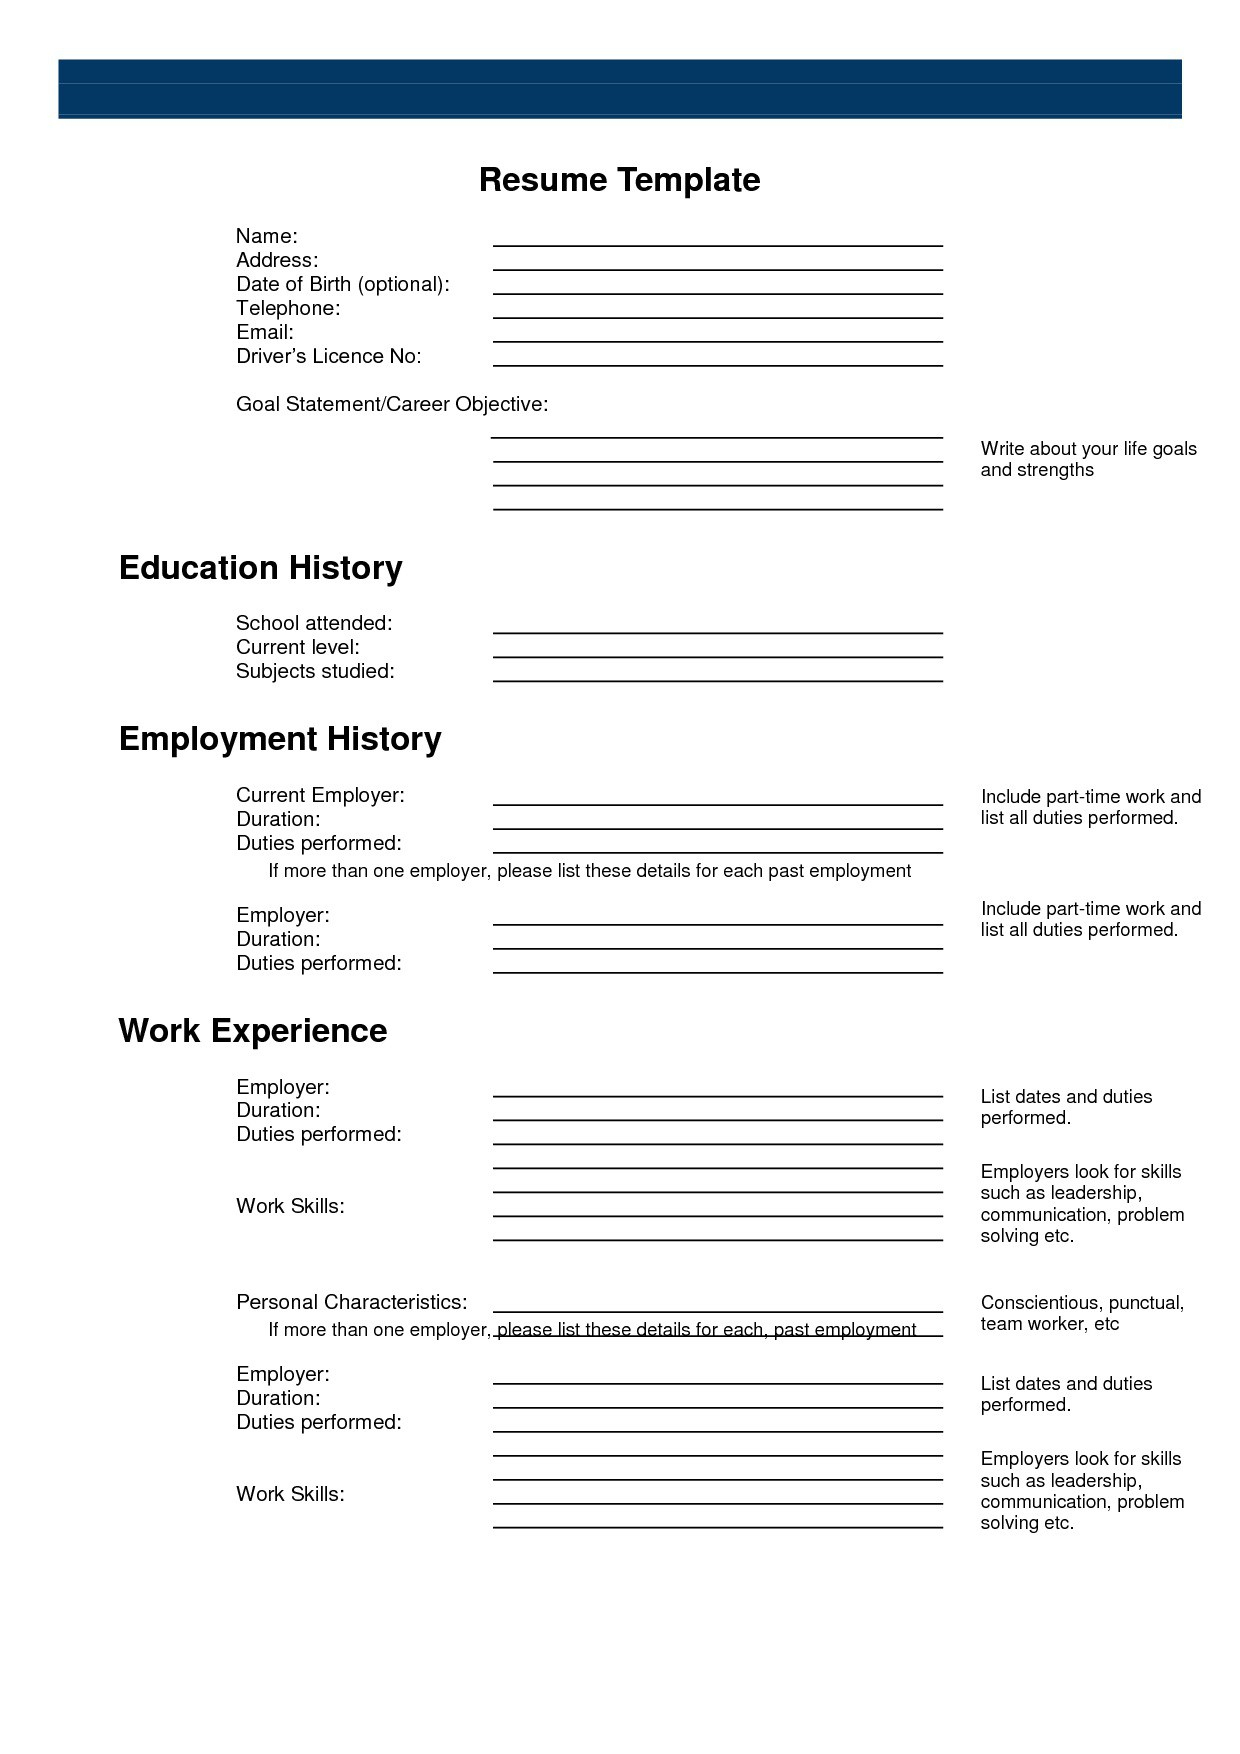 Free Printable Resume Builder Templates – Thatretailchick - Free Printable Resume Builder